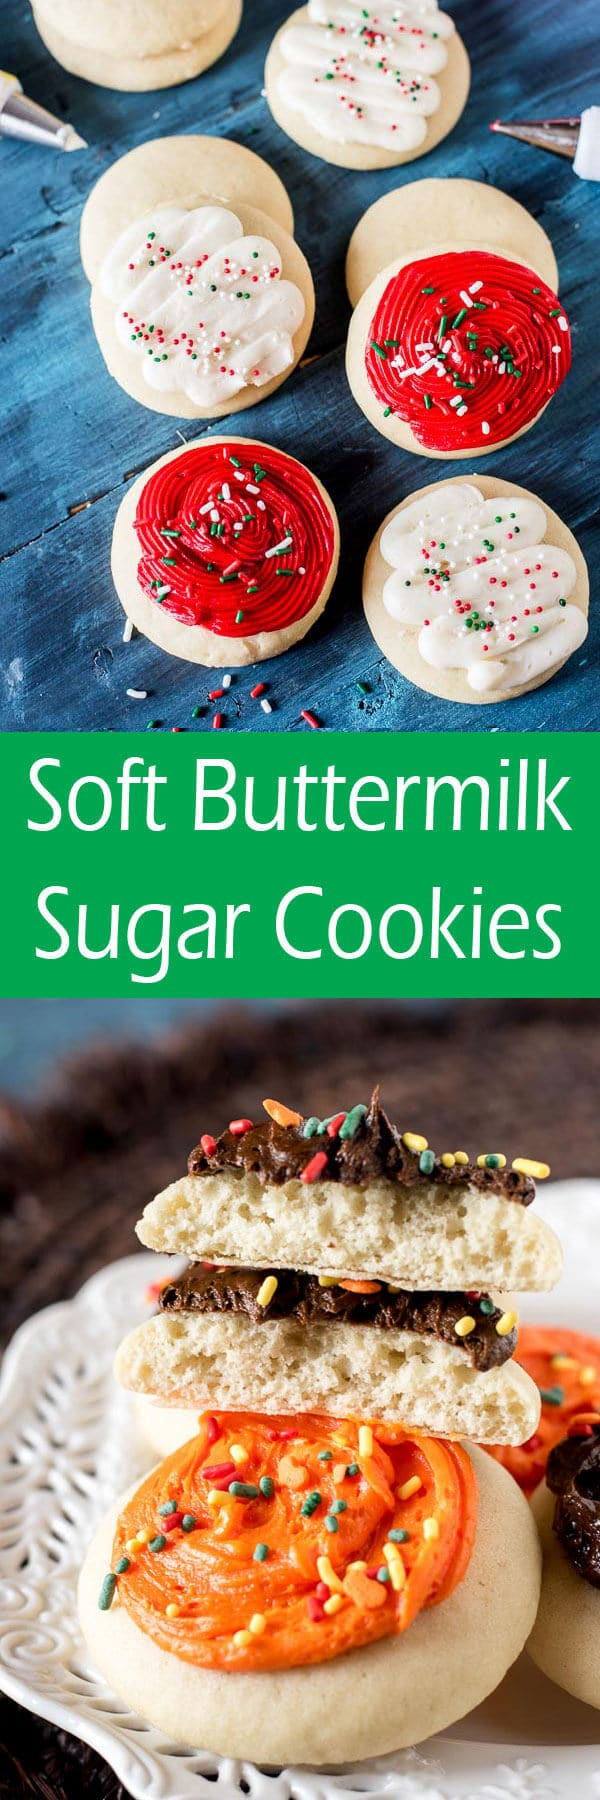 Thick, soft, buttermilk sugar cookies are the best cutout cookies. Similar to lofthouse cookies, these are perfect with a dollop of buttercream frosting.